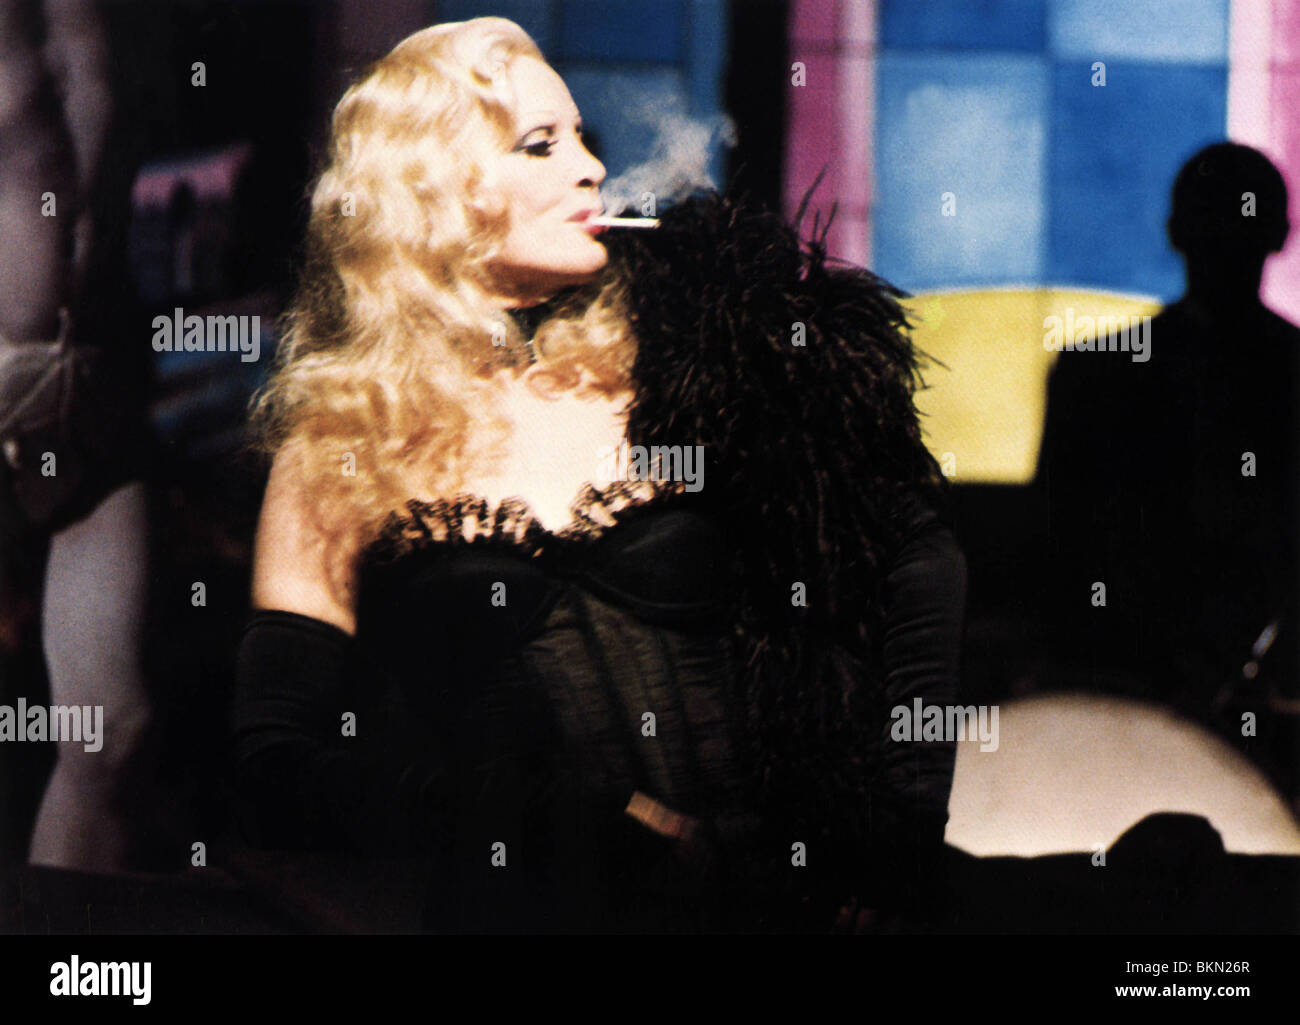 Salon Kitty Ingrid Thulin Stock Photos And Ingrid Thulin Stock Images